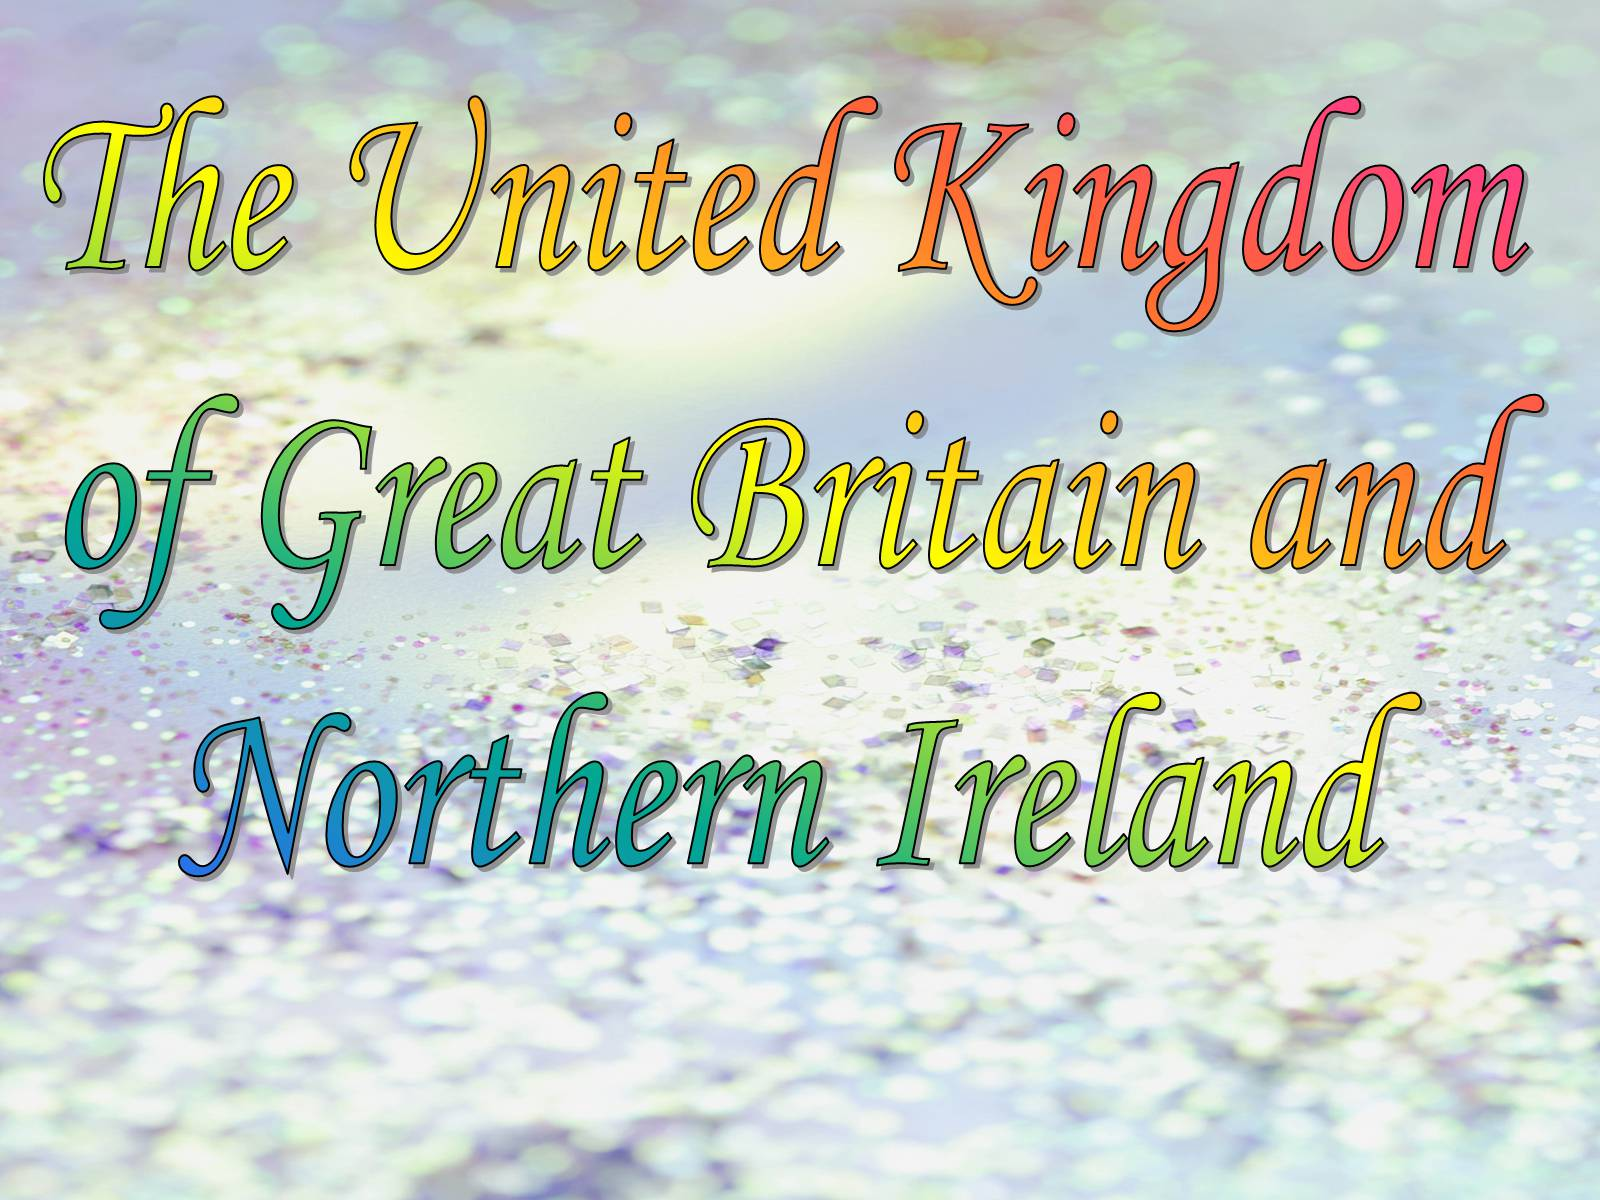 Презентація на тему «The United Kingdom of Great Britain and Northern Ireland» (варіант 2) - Слайд #1